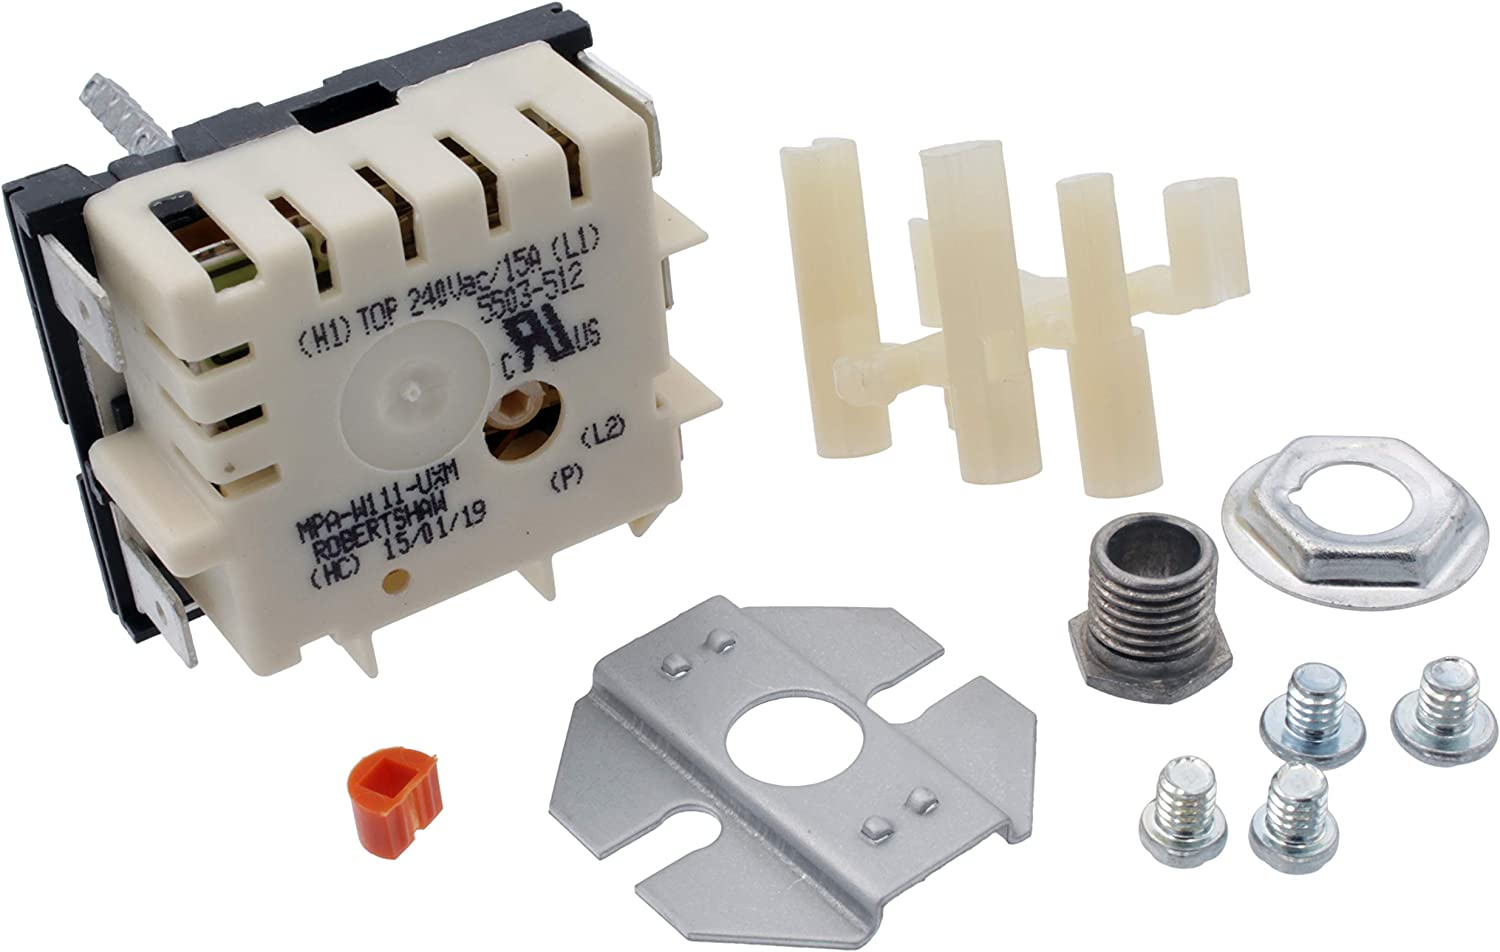 Supplying Demand WB21X5243 Range Surface Burner Switch Kit Compatible With GE Fits 2603, 301816